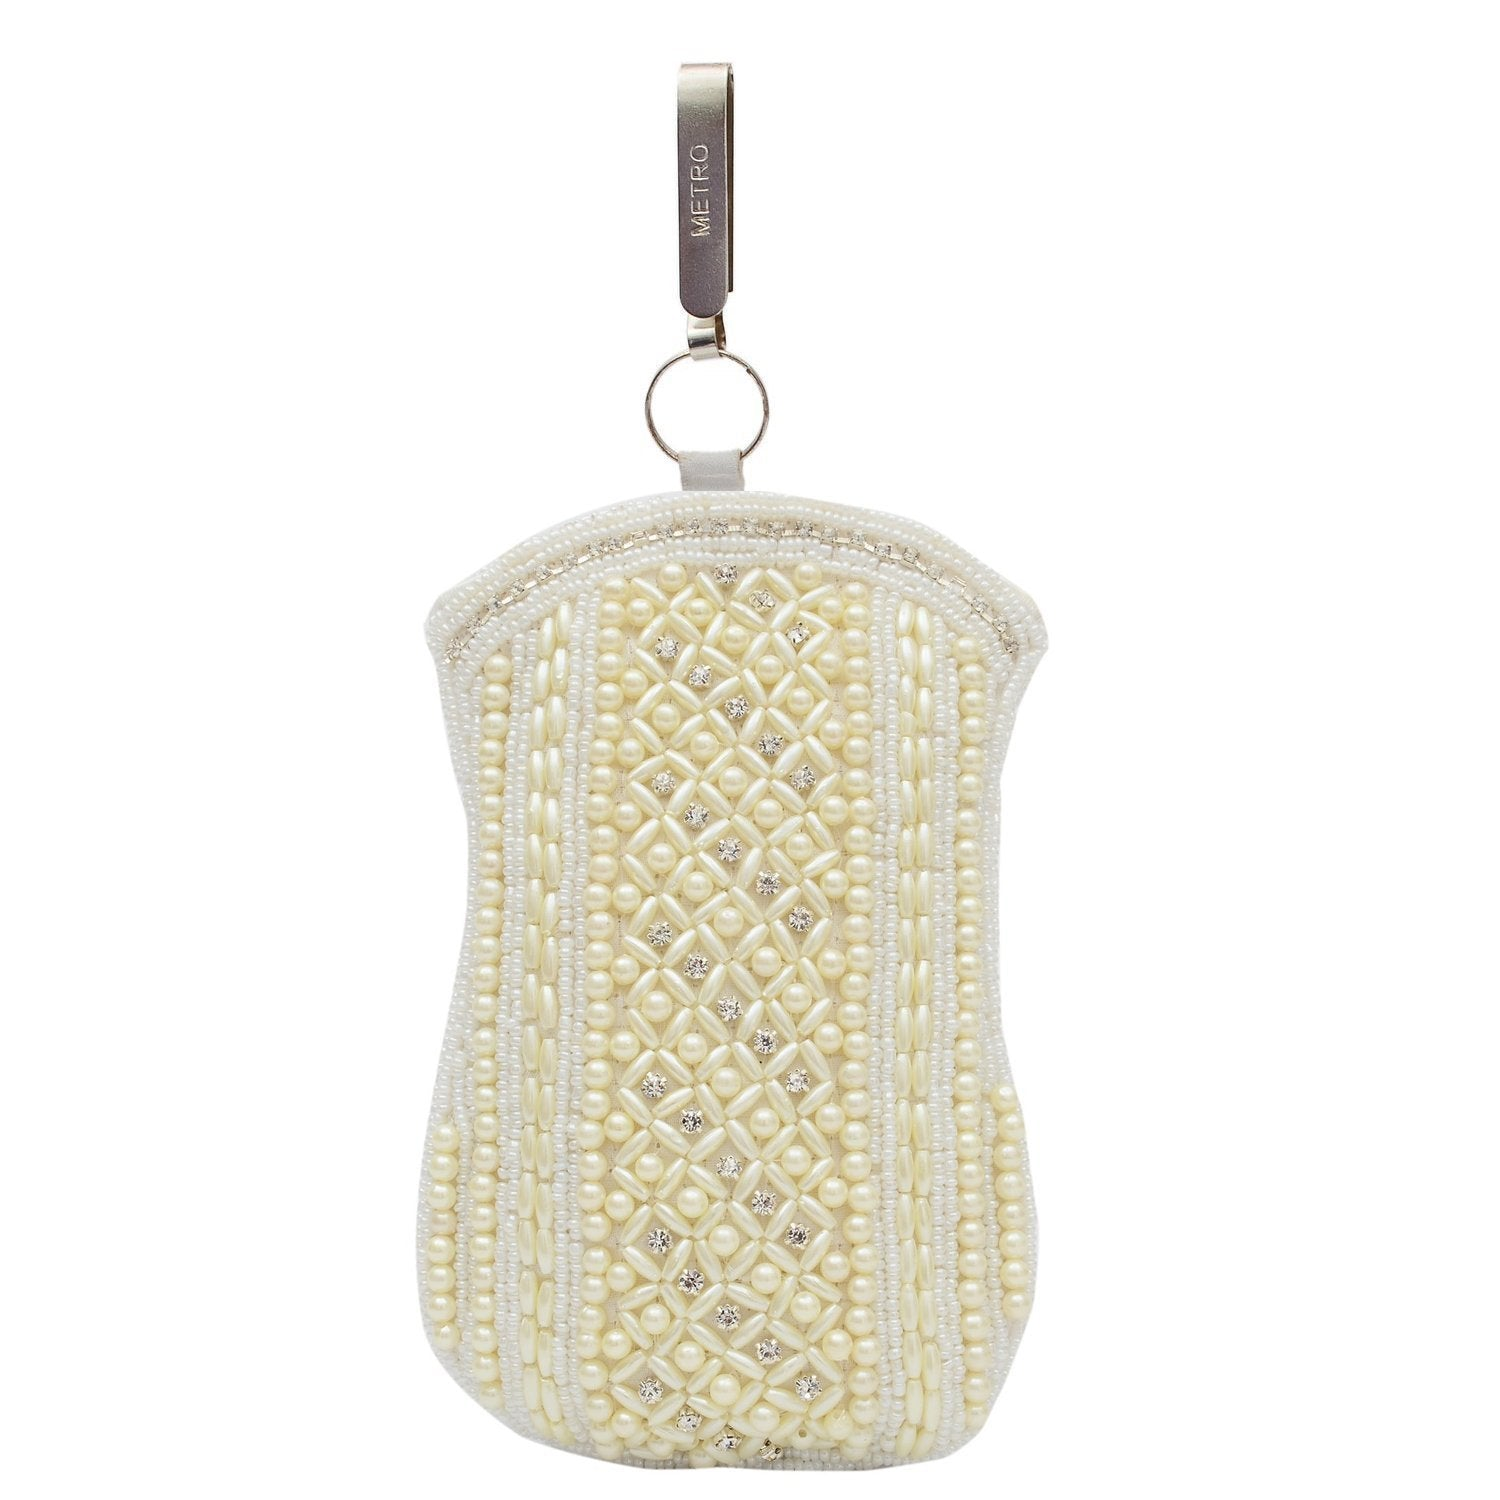 Ethnic Beads & Pearl Clutch Mobile Pouch Waist Clip - Bagaholics Gift